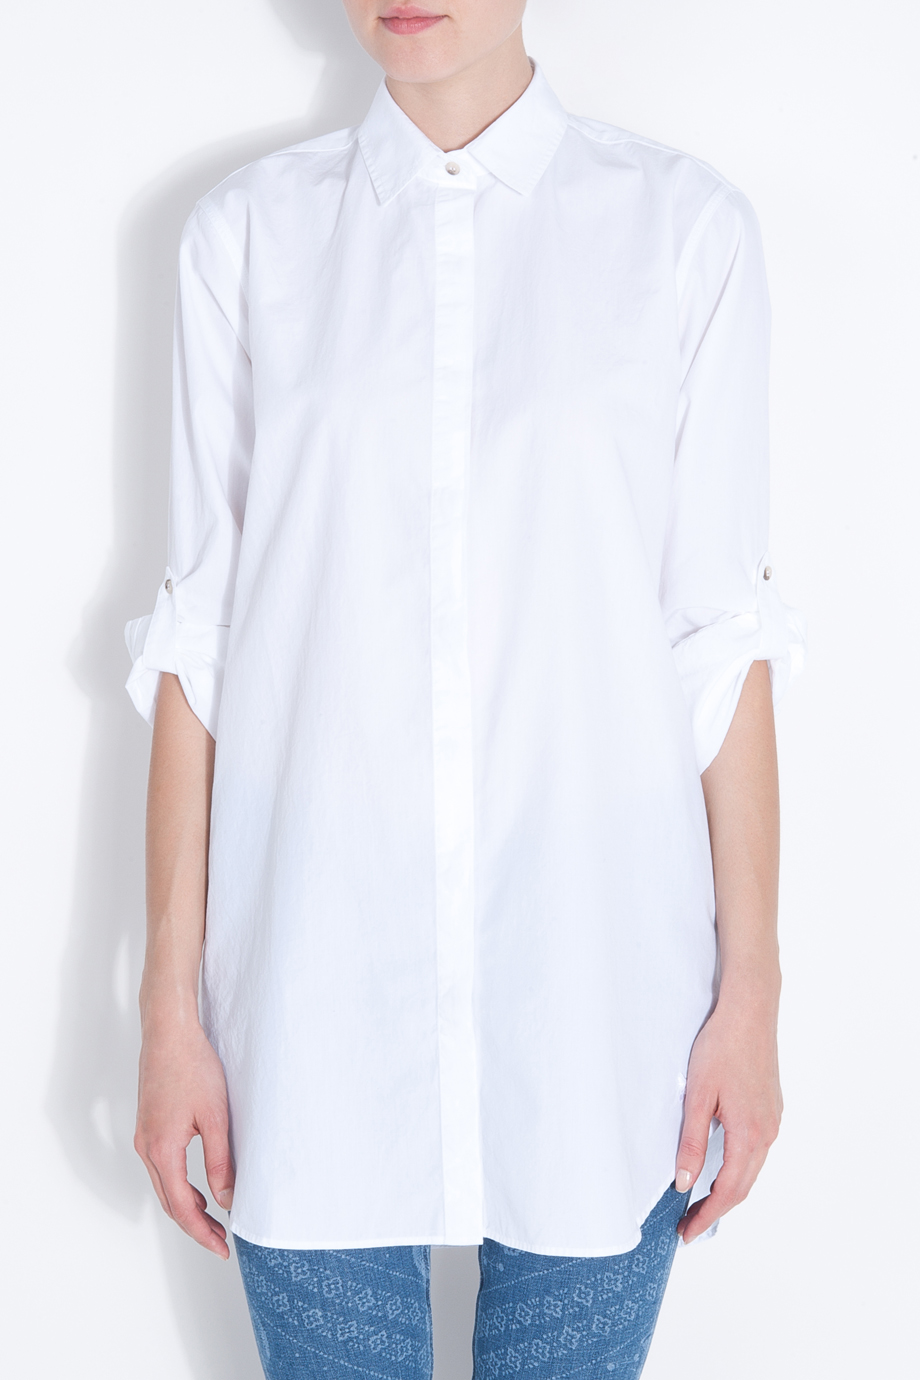 M.i.h jeans Oversize White Shirt in White | Lyst